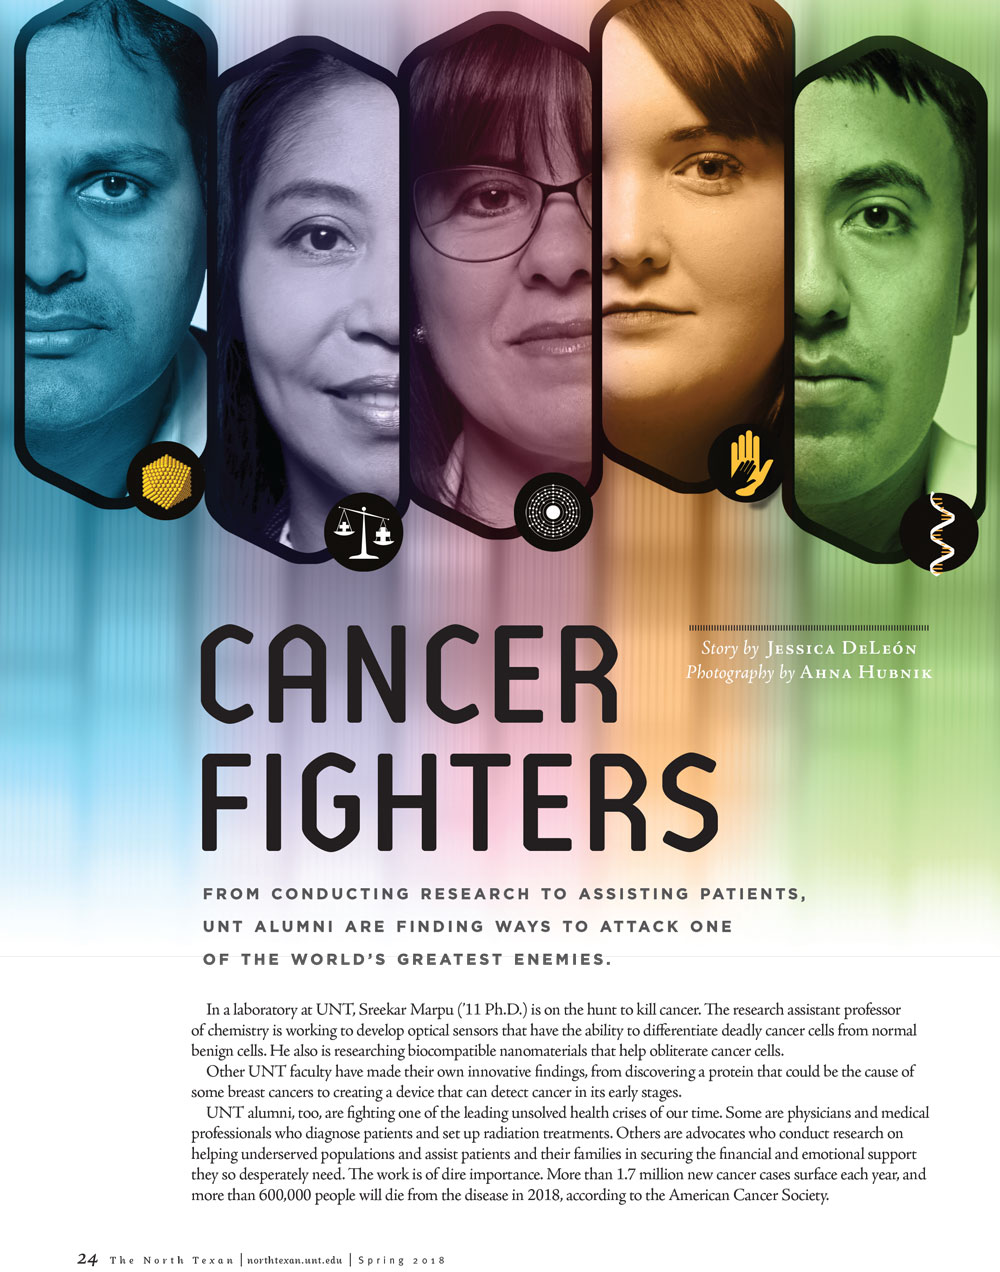 Cancer Fighters article